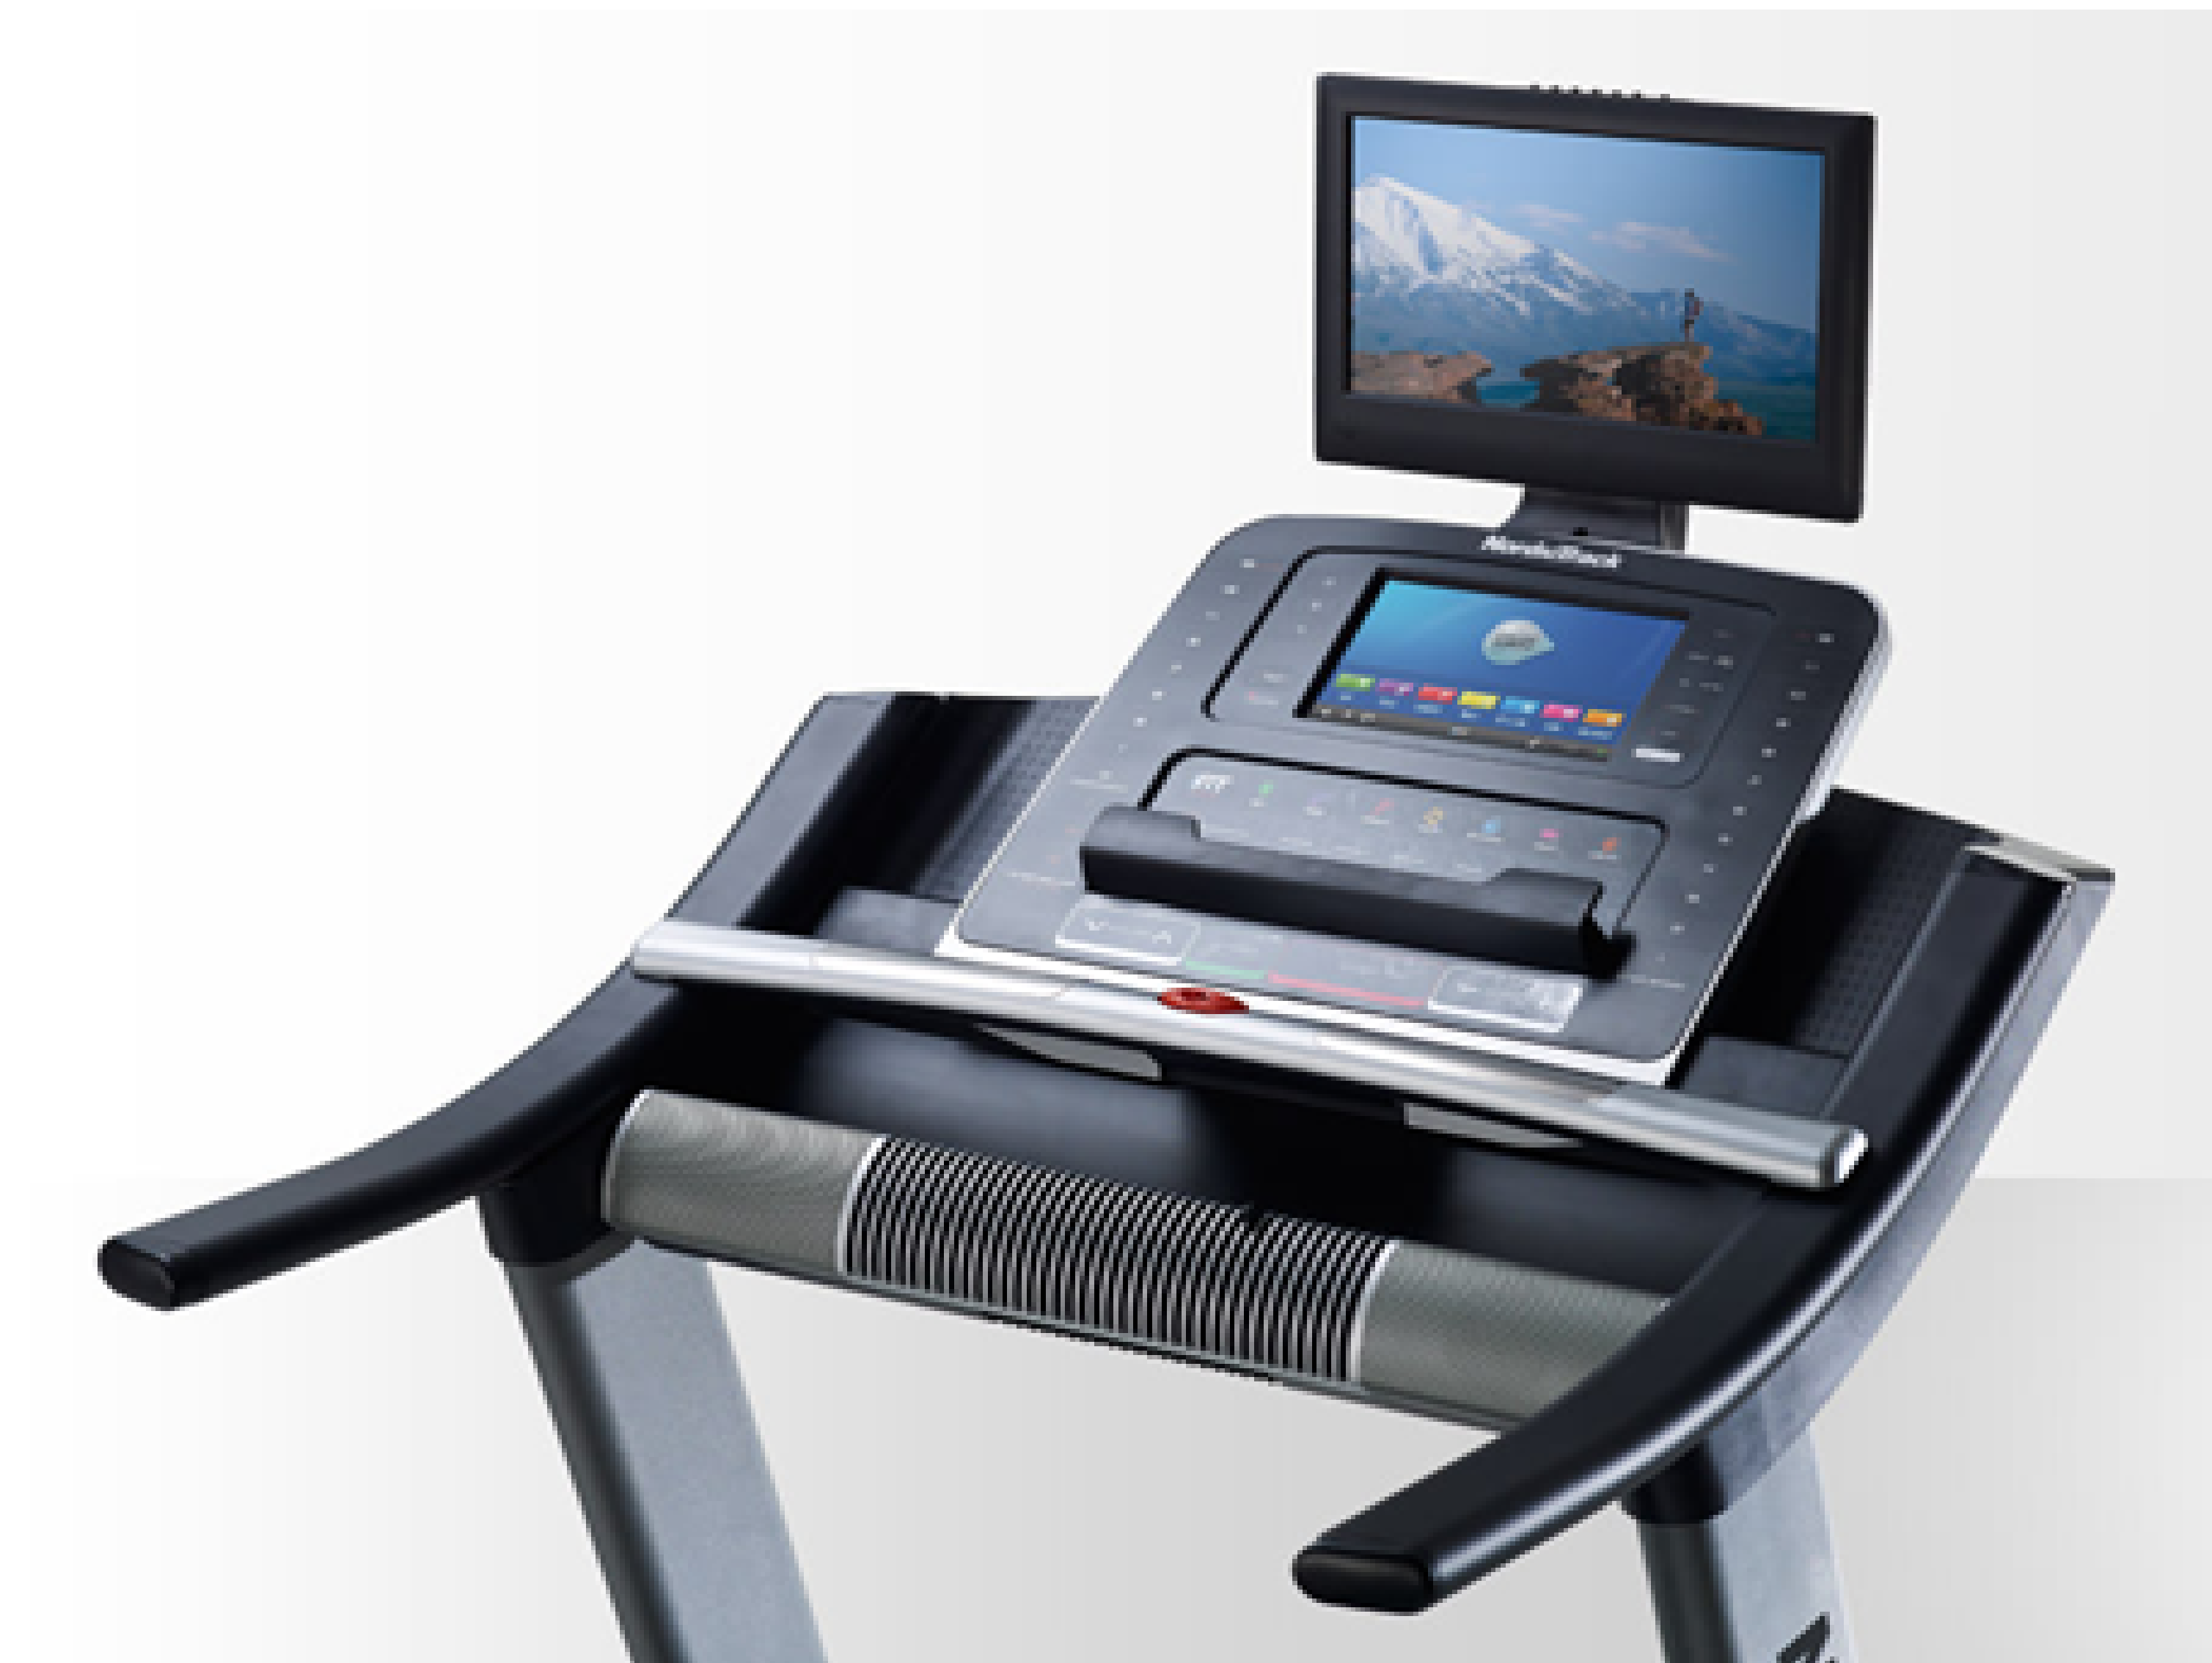 don too for desks t make huffpost up reviews facebook o even desk sitting much treadmill n